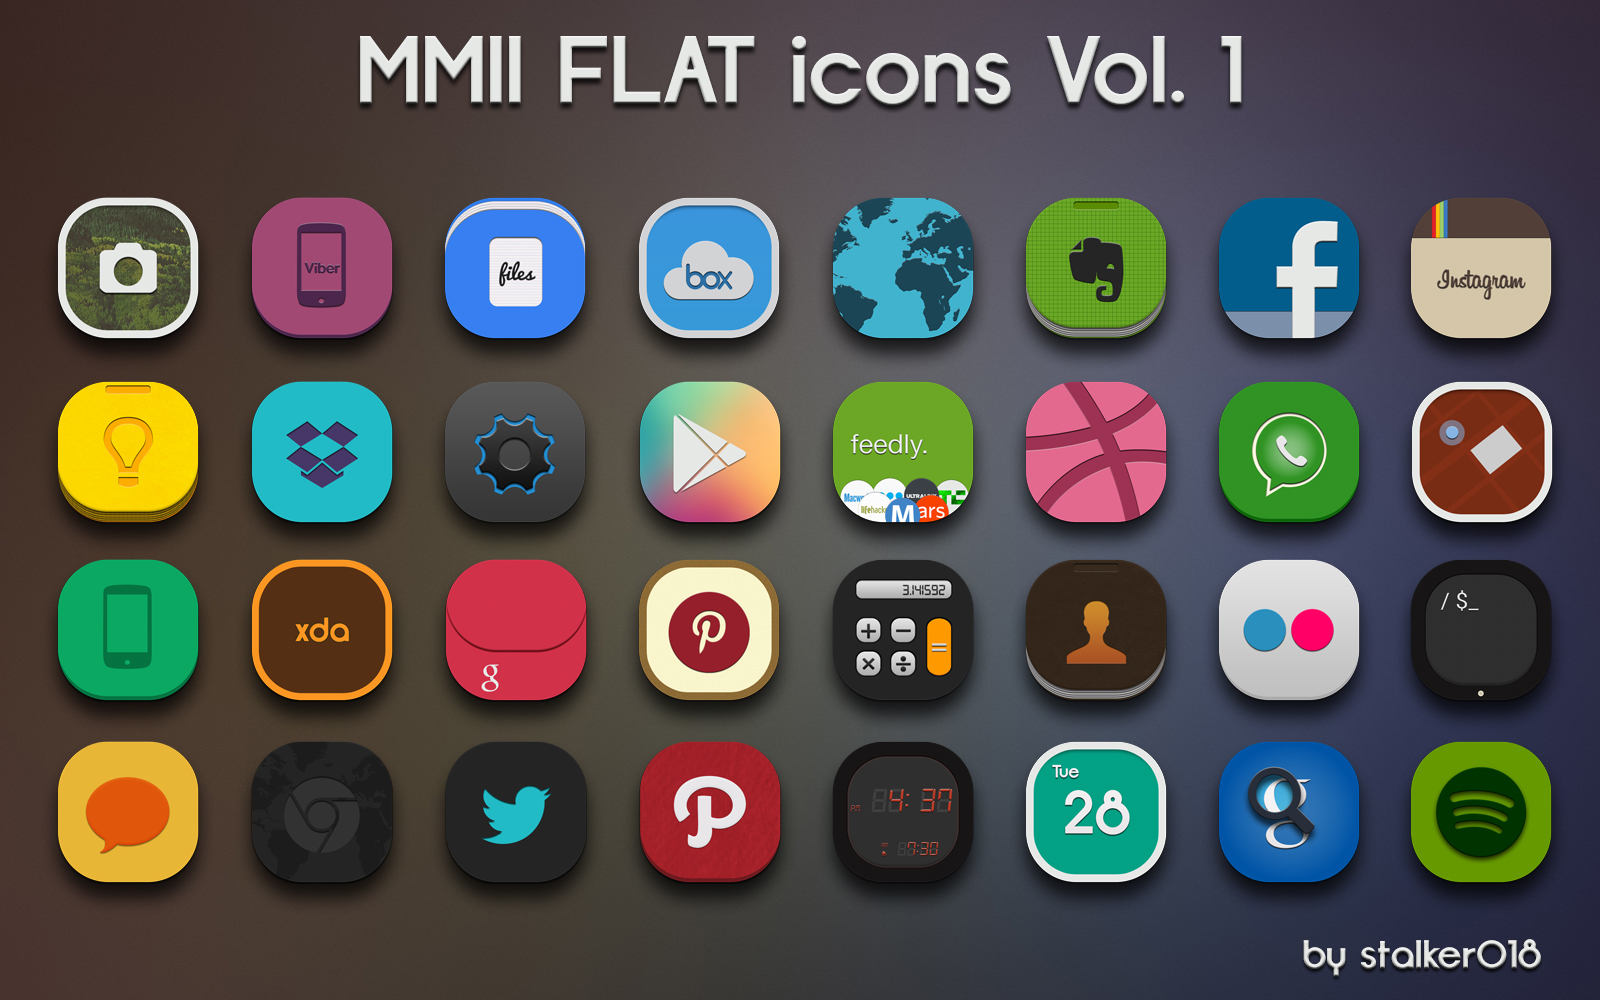 mmii_flat_icons_vol_1_by_stalker018-d67vr1s